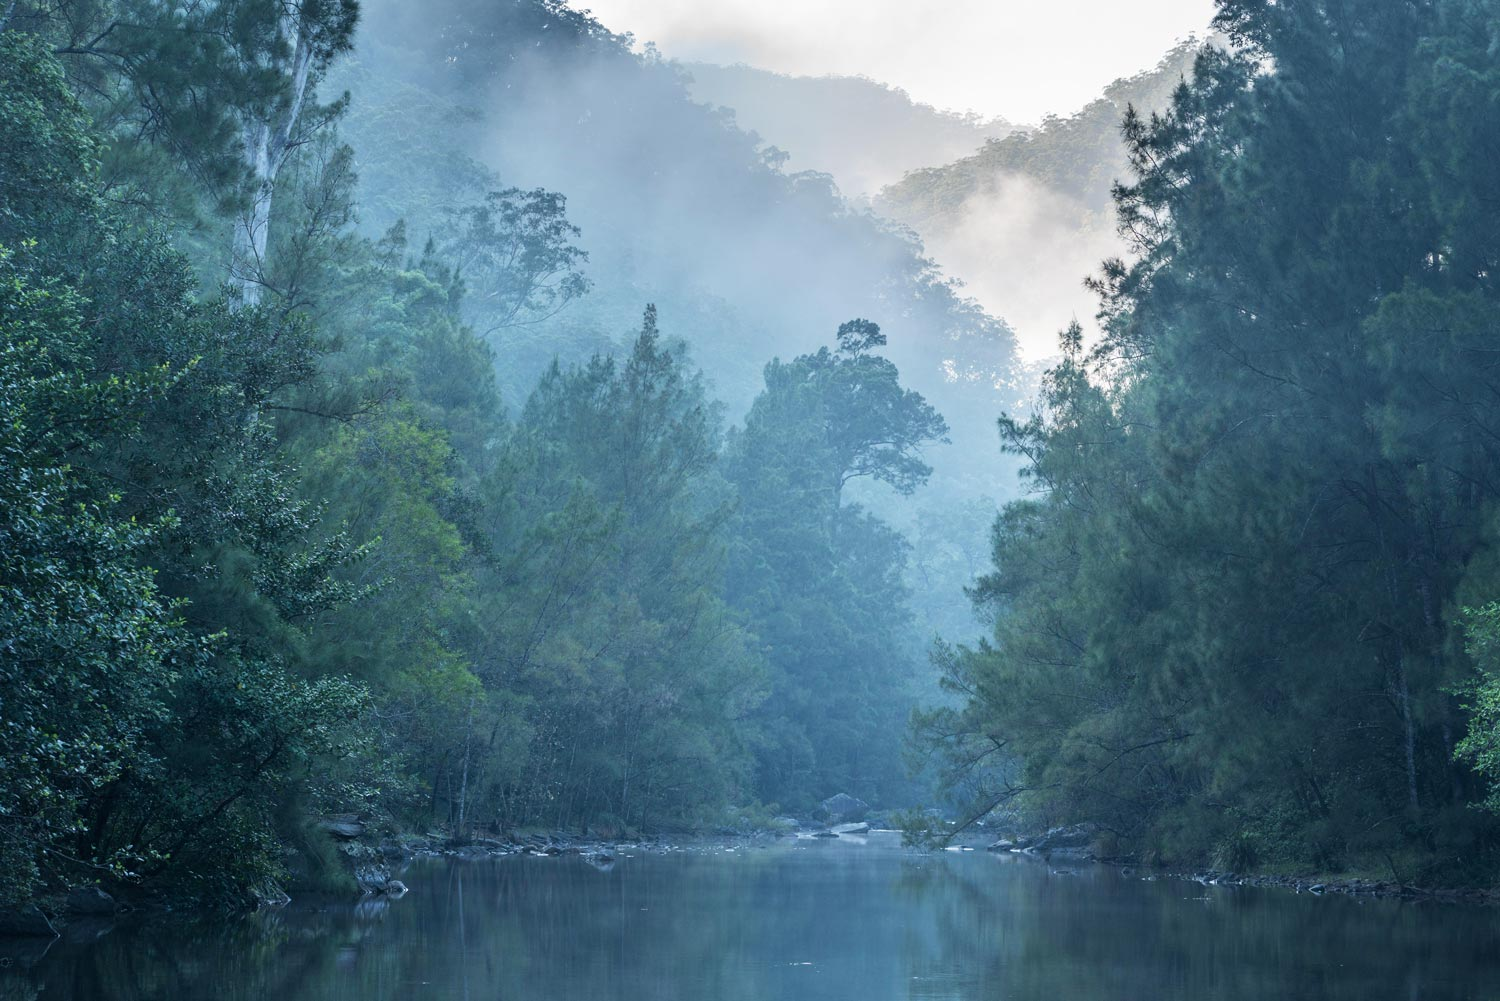 NSW great wilderness area at risk: expert  Image